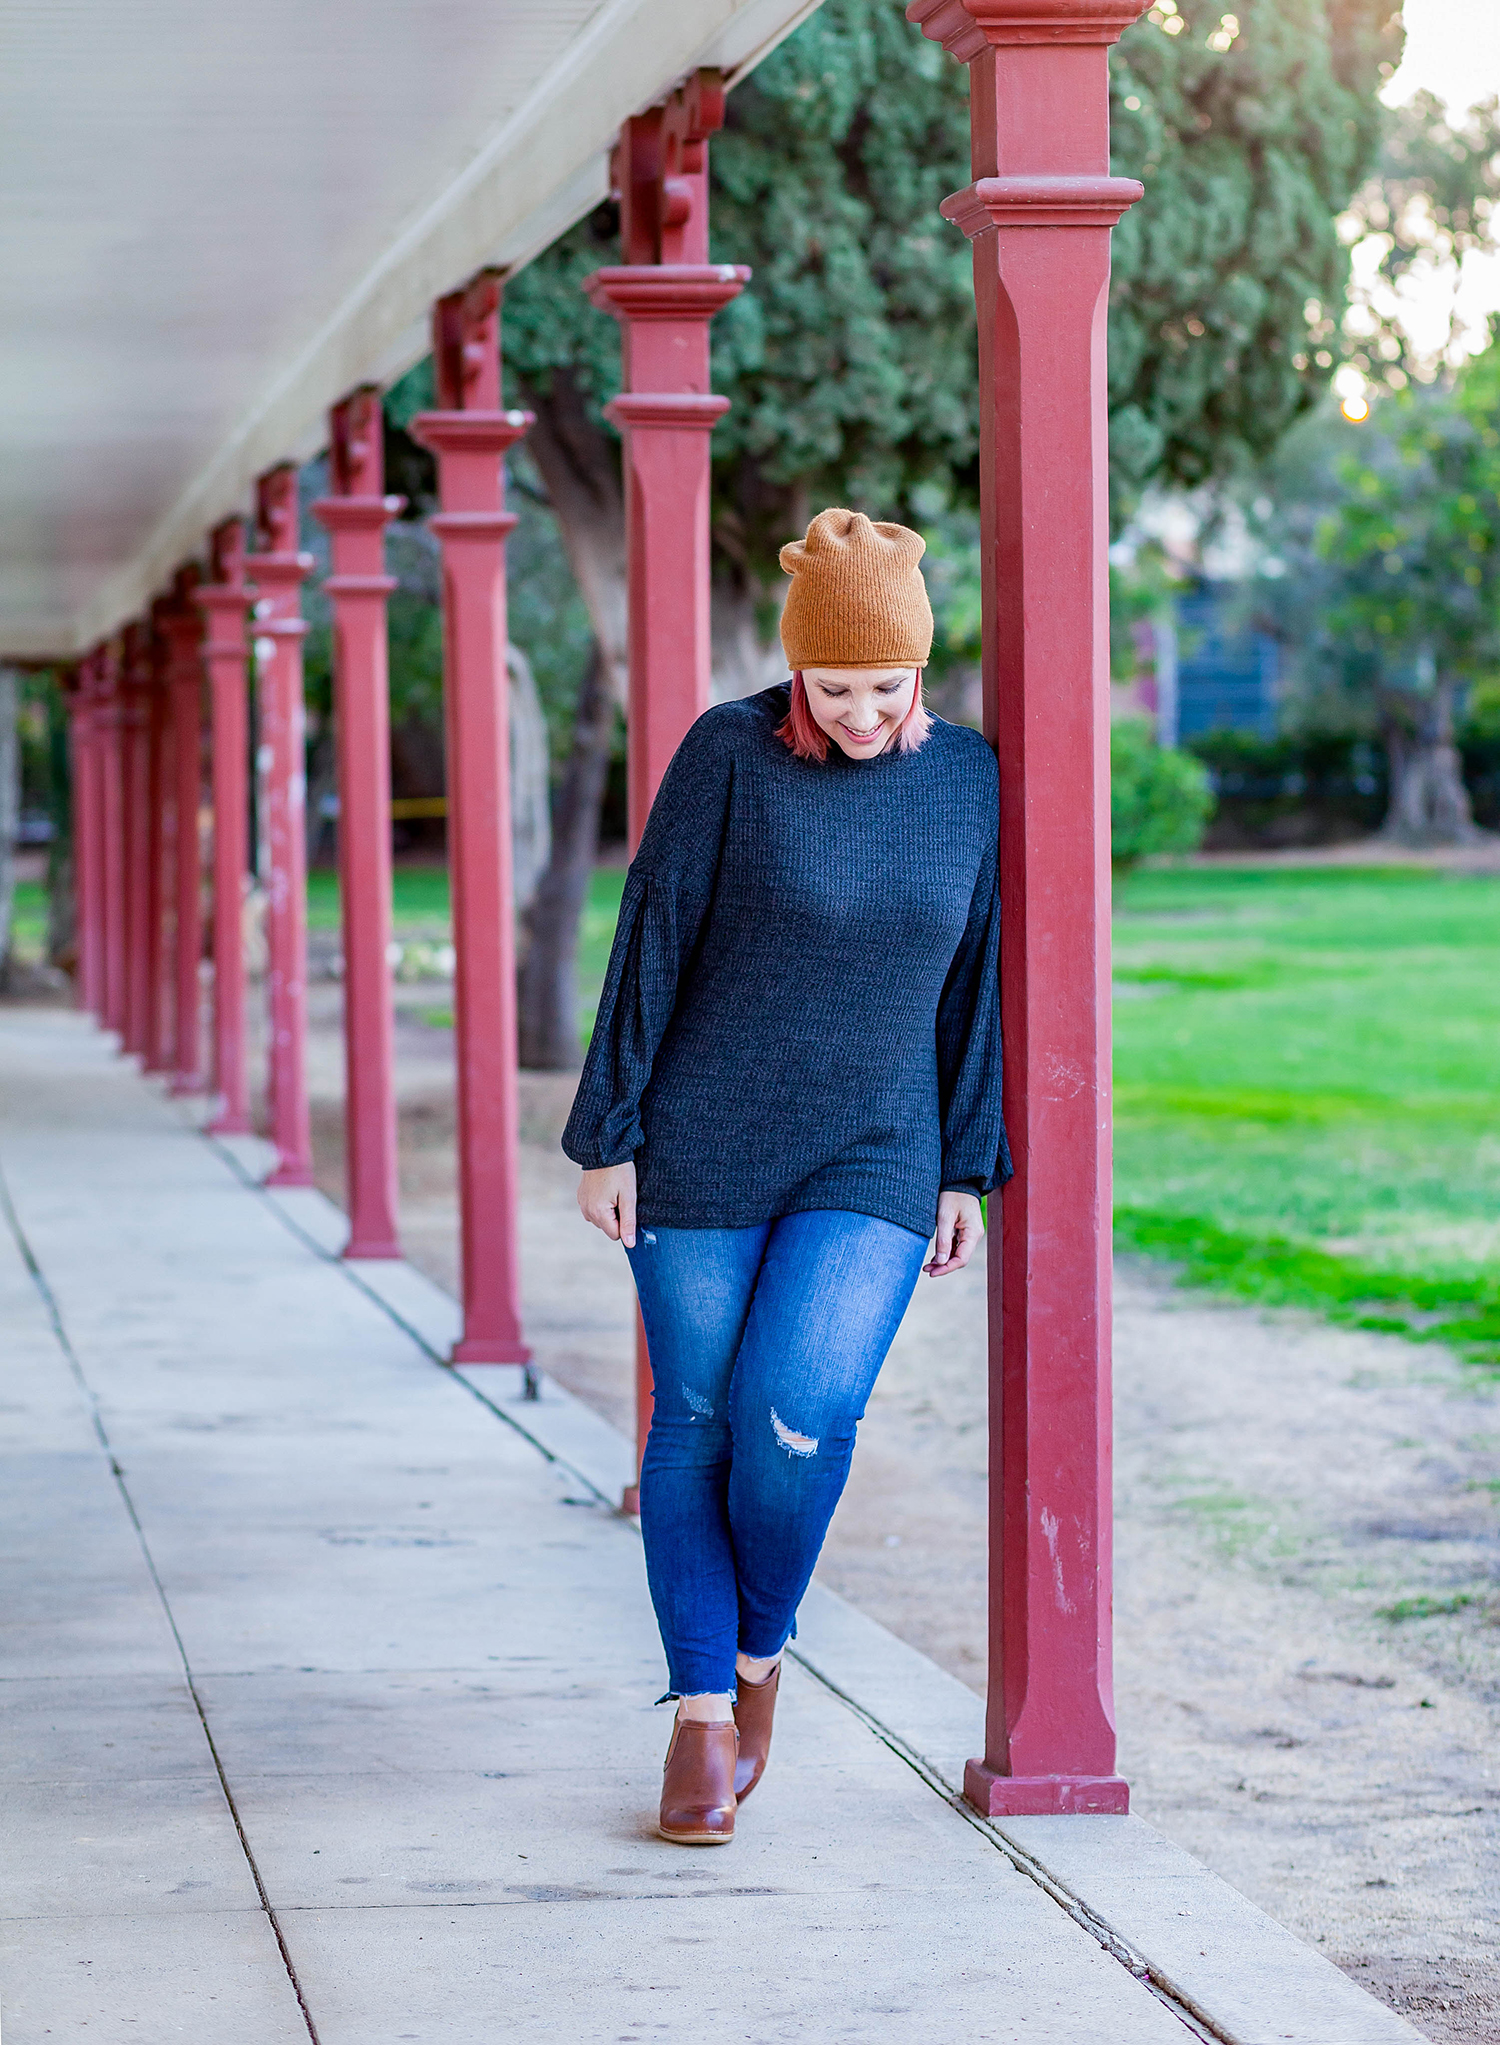 Looking for a simple winter outfit? I love these brown booties with jeans and a beanie!